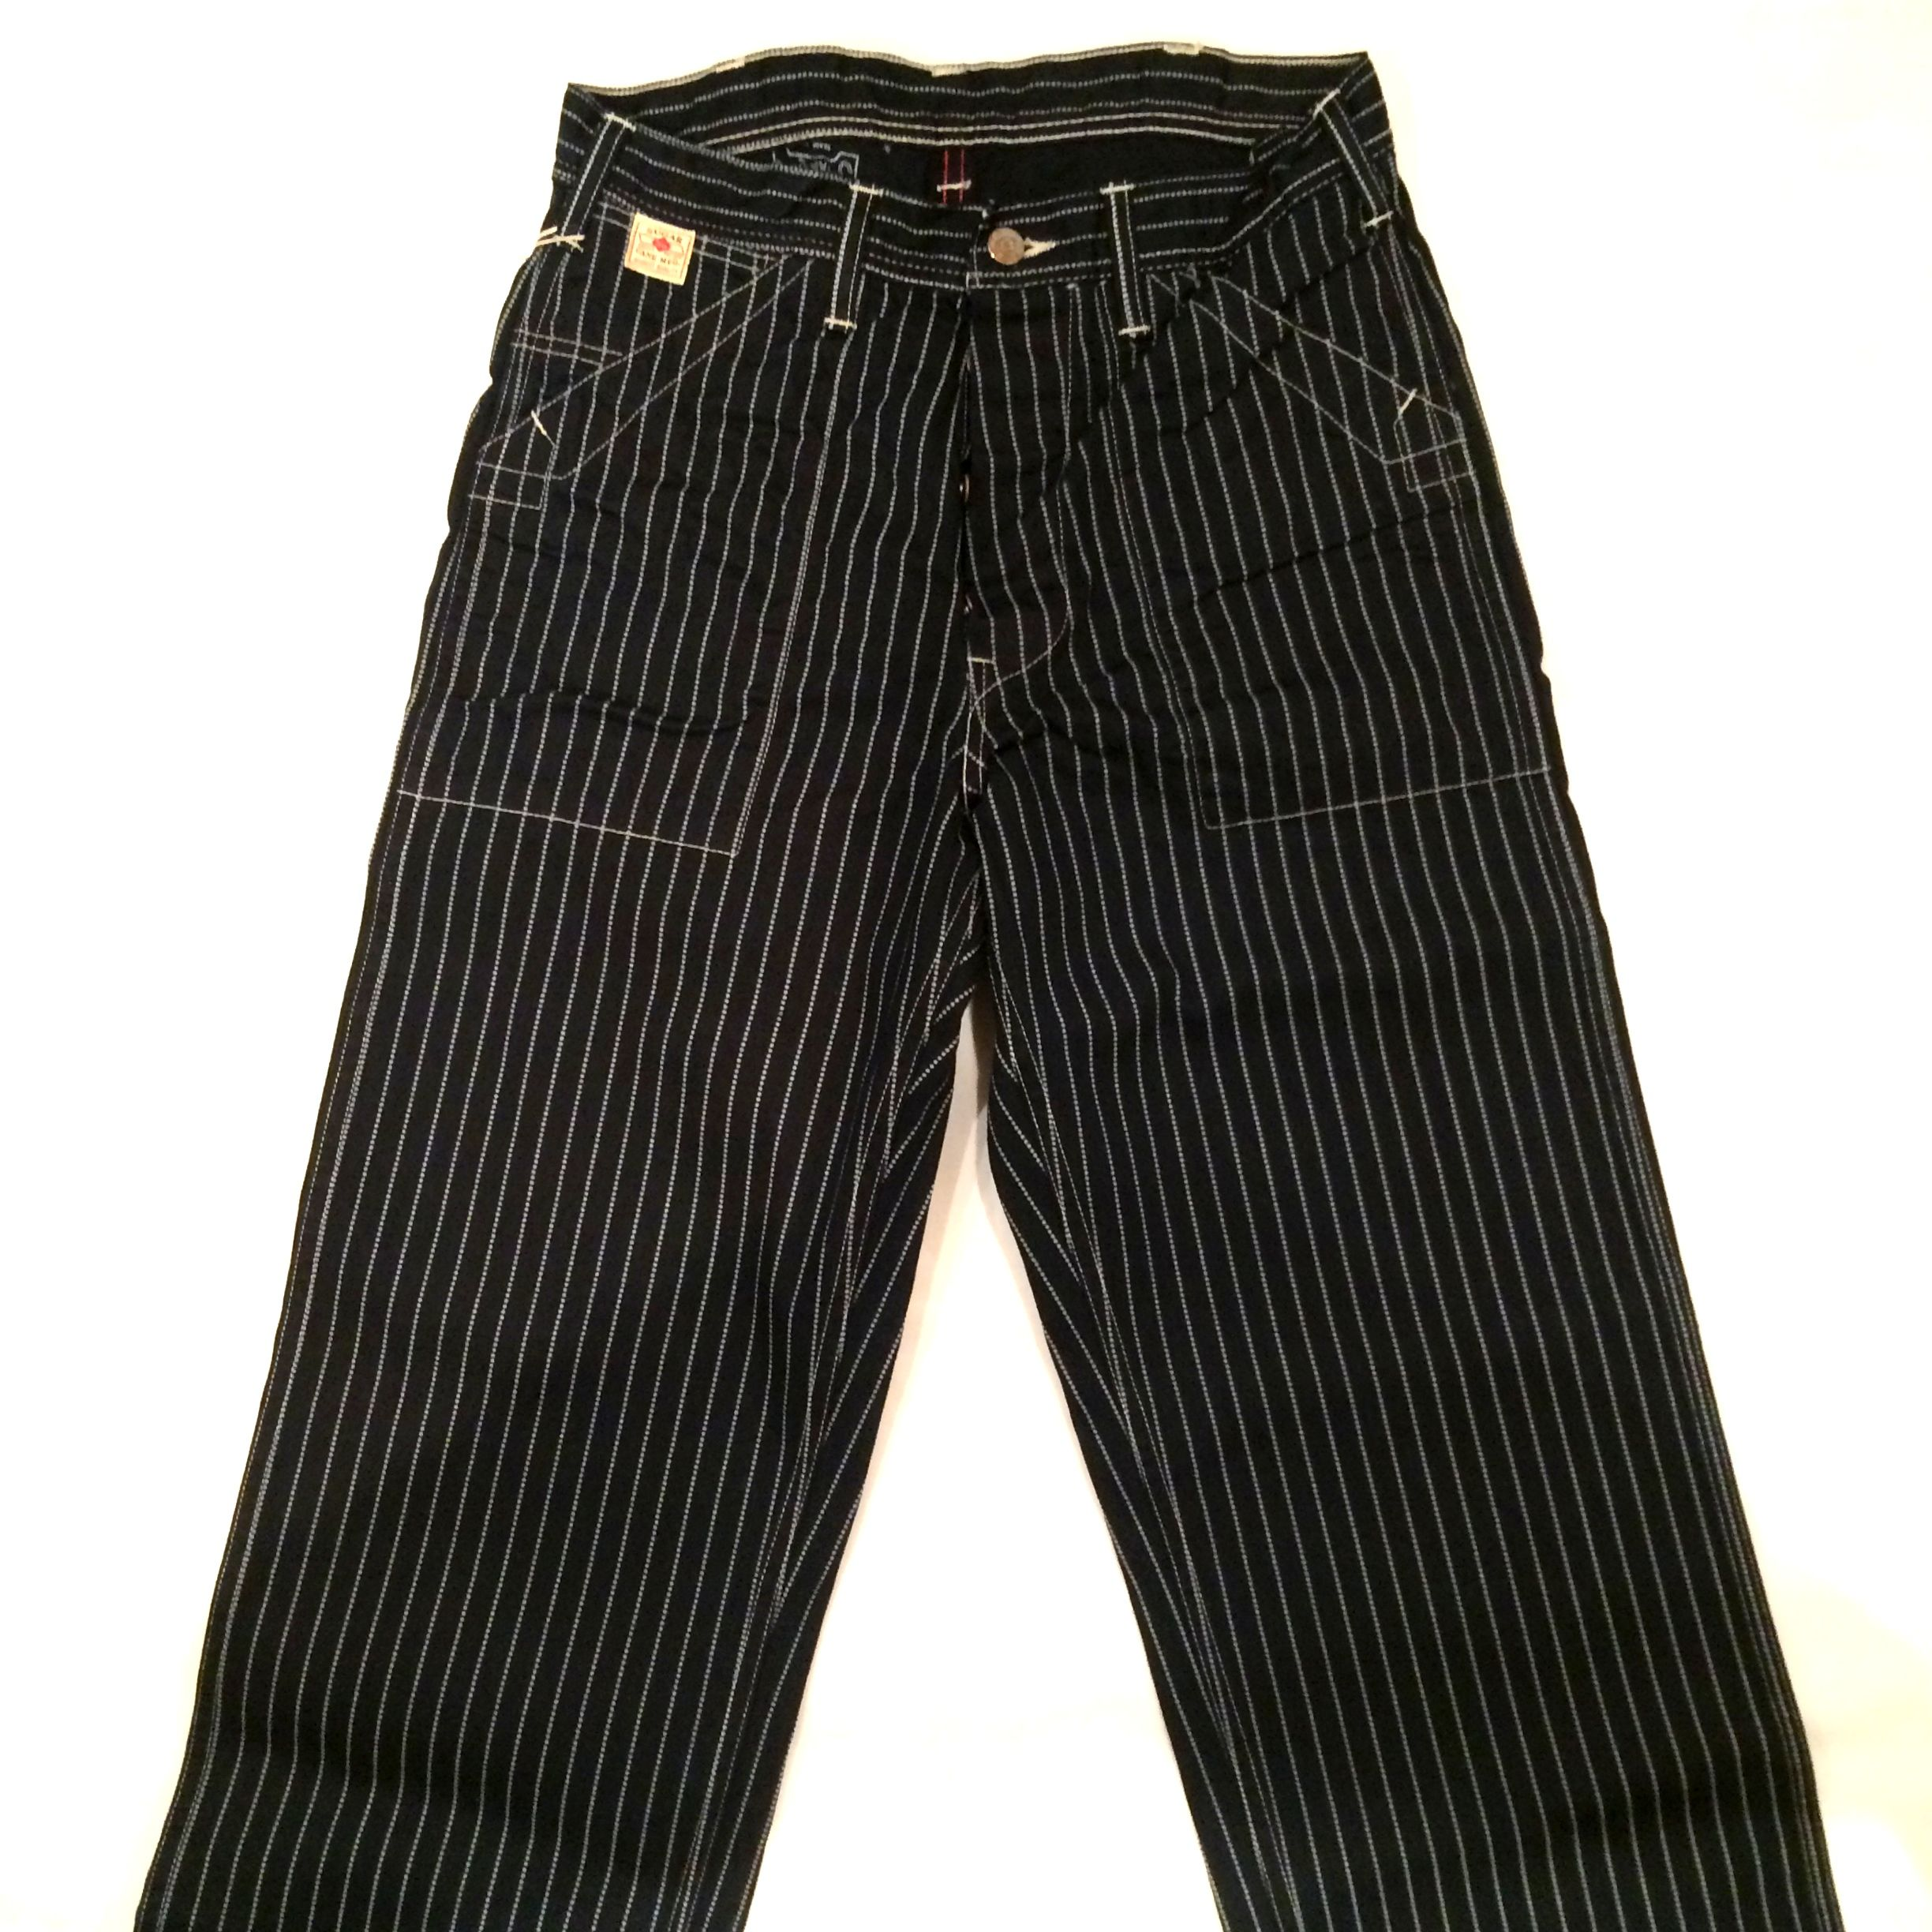 SUGAR CANE WABASH STRIPE WORK PANTS SC40786